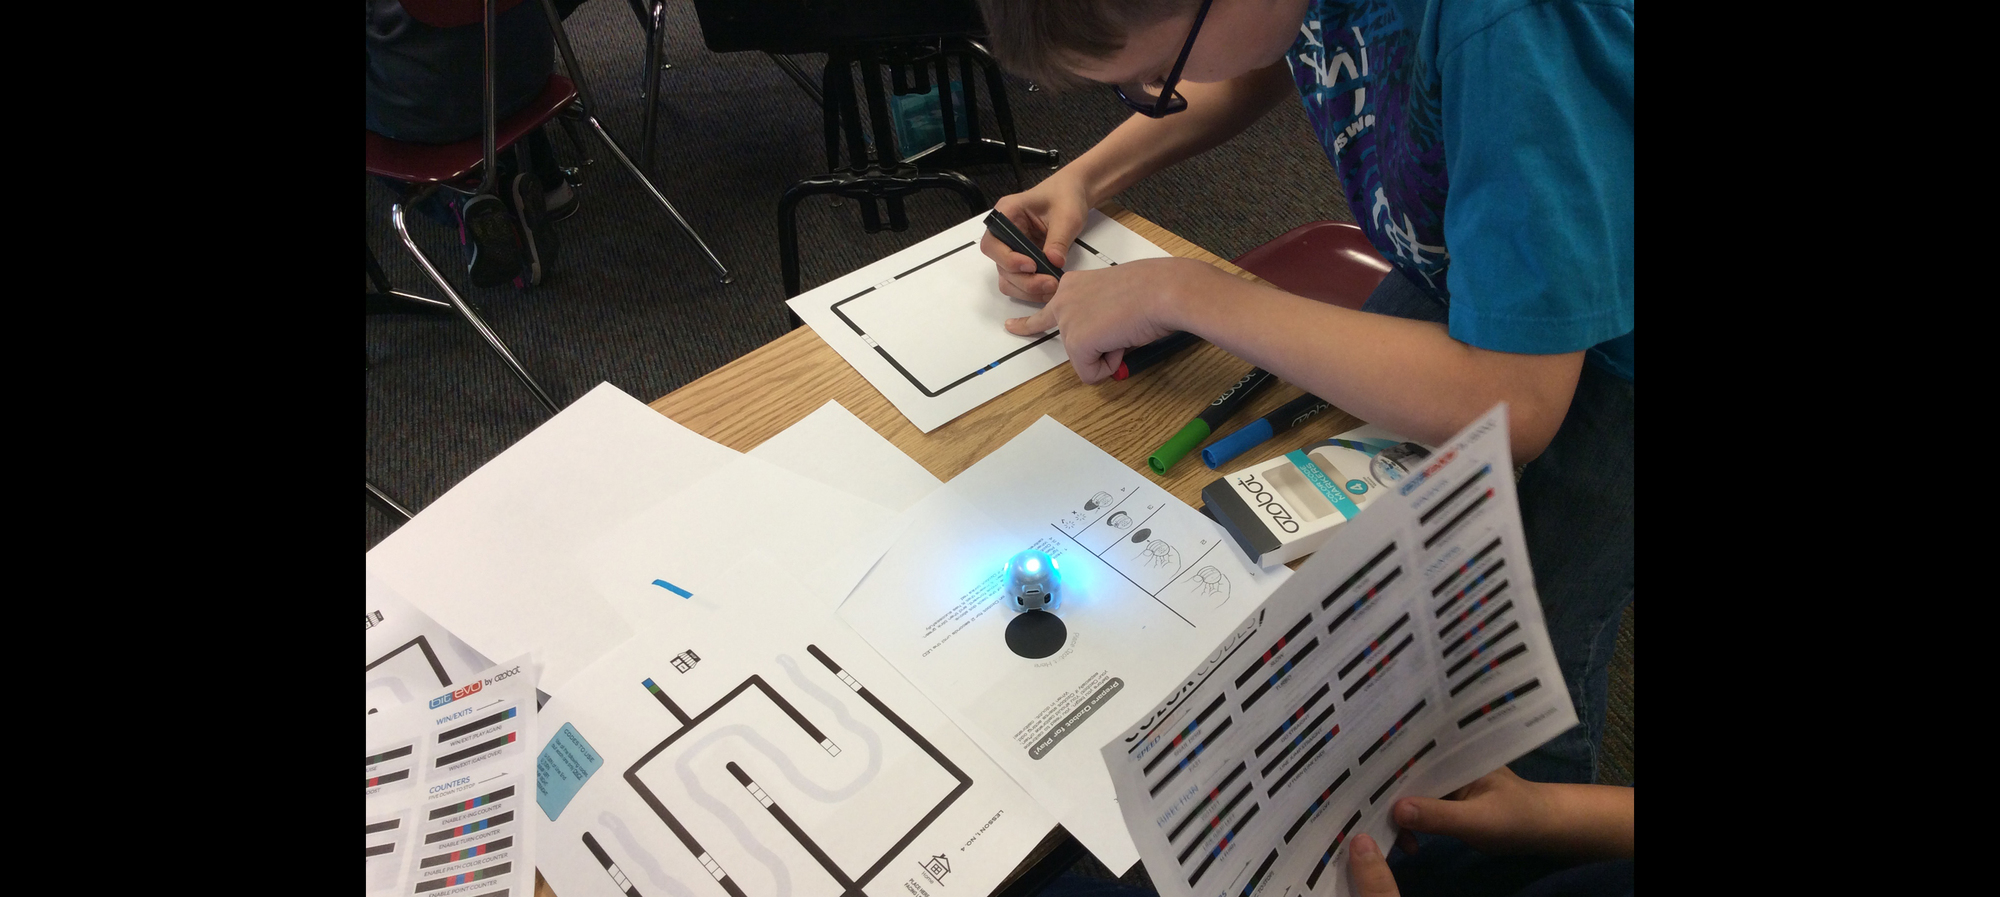 5th Grade student using Ozobot.  Thank you Holly Educational Foundation for awarding Miss Raymoure the scholarship to purchase a class set!